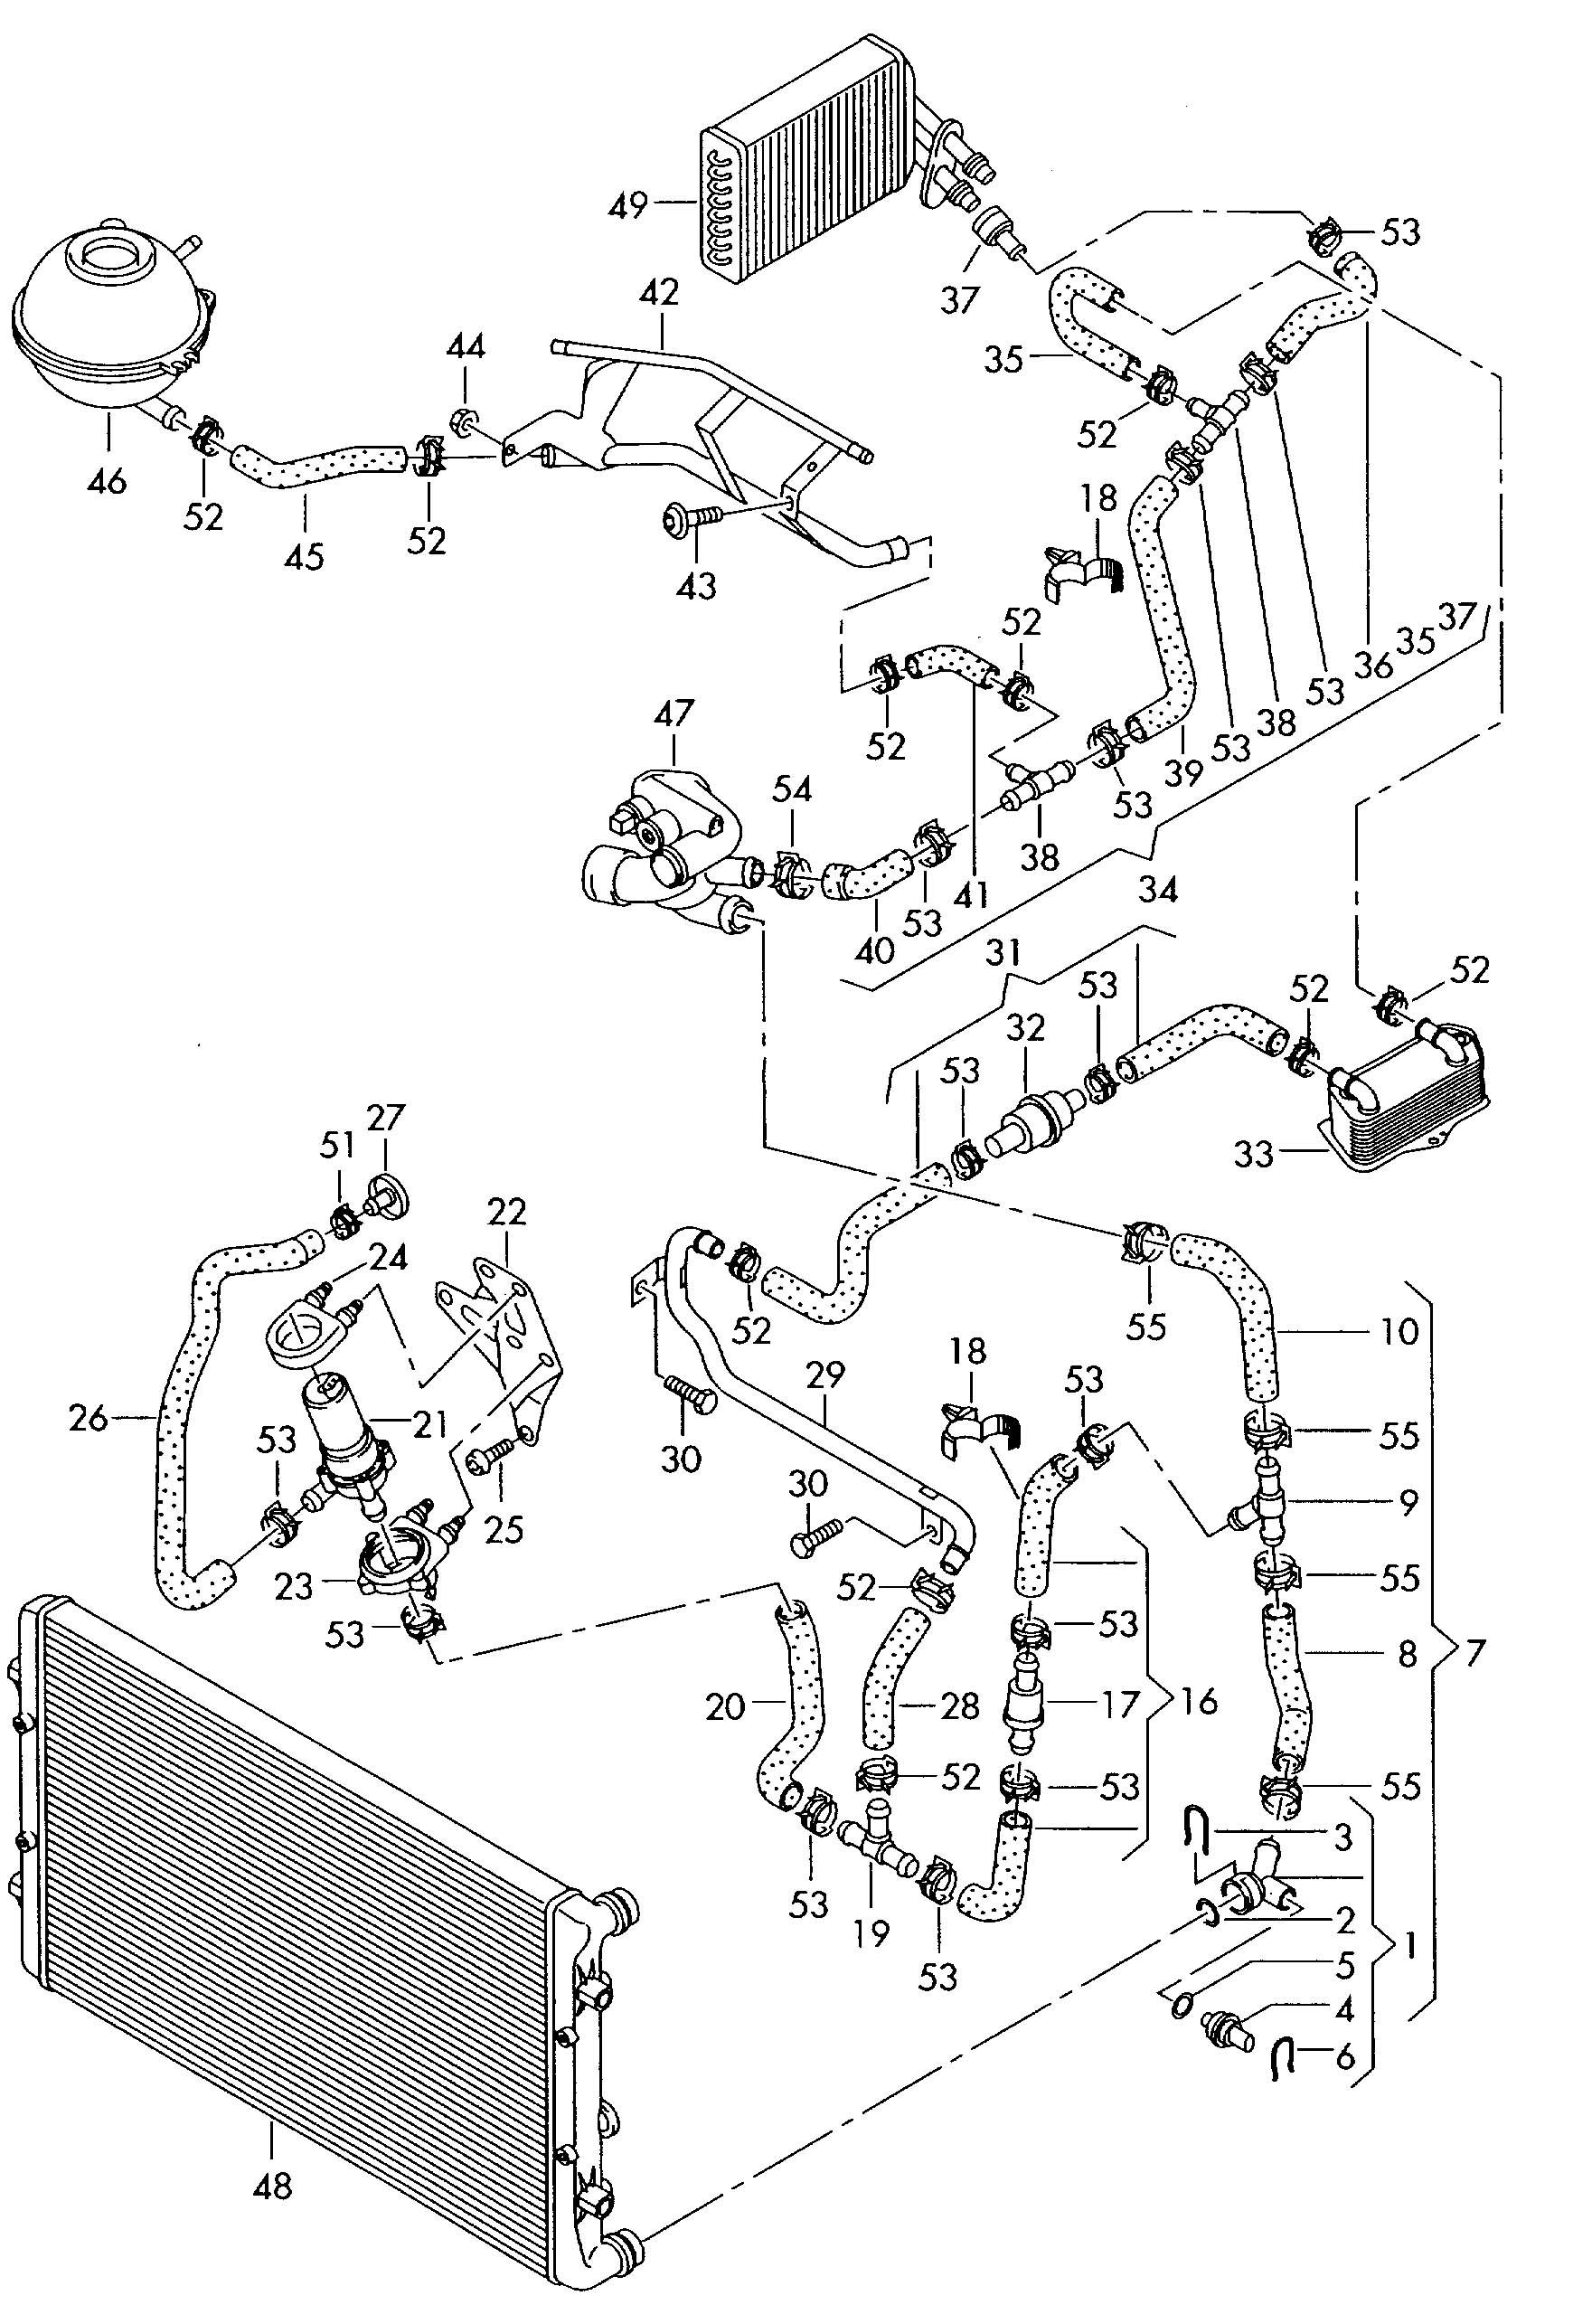 Generic Car Engine Compartment Diagram Opinions About Wiring 1998 S10 2 Audi A3 Cooling System Pinterest Rh Com